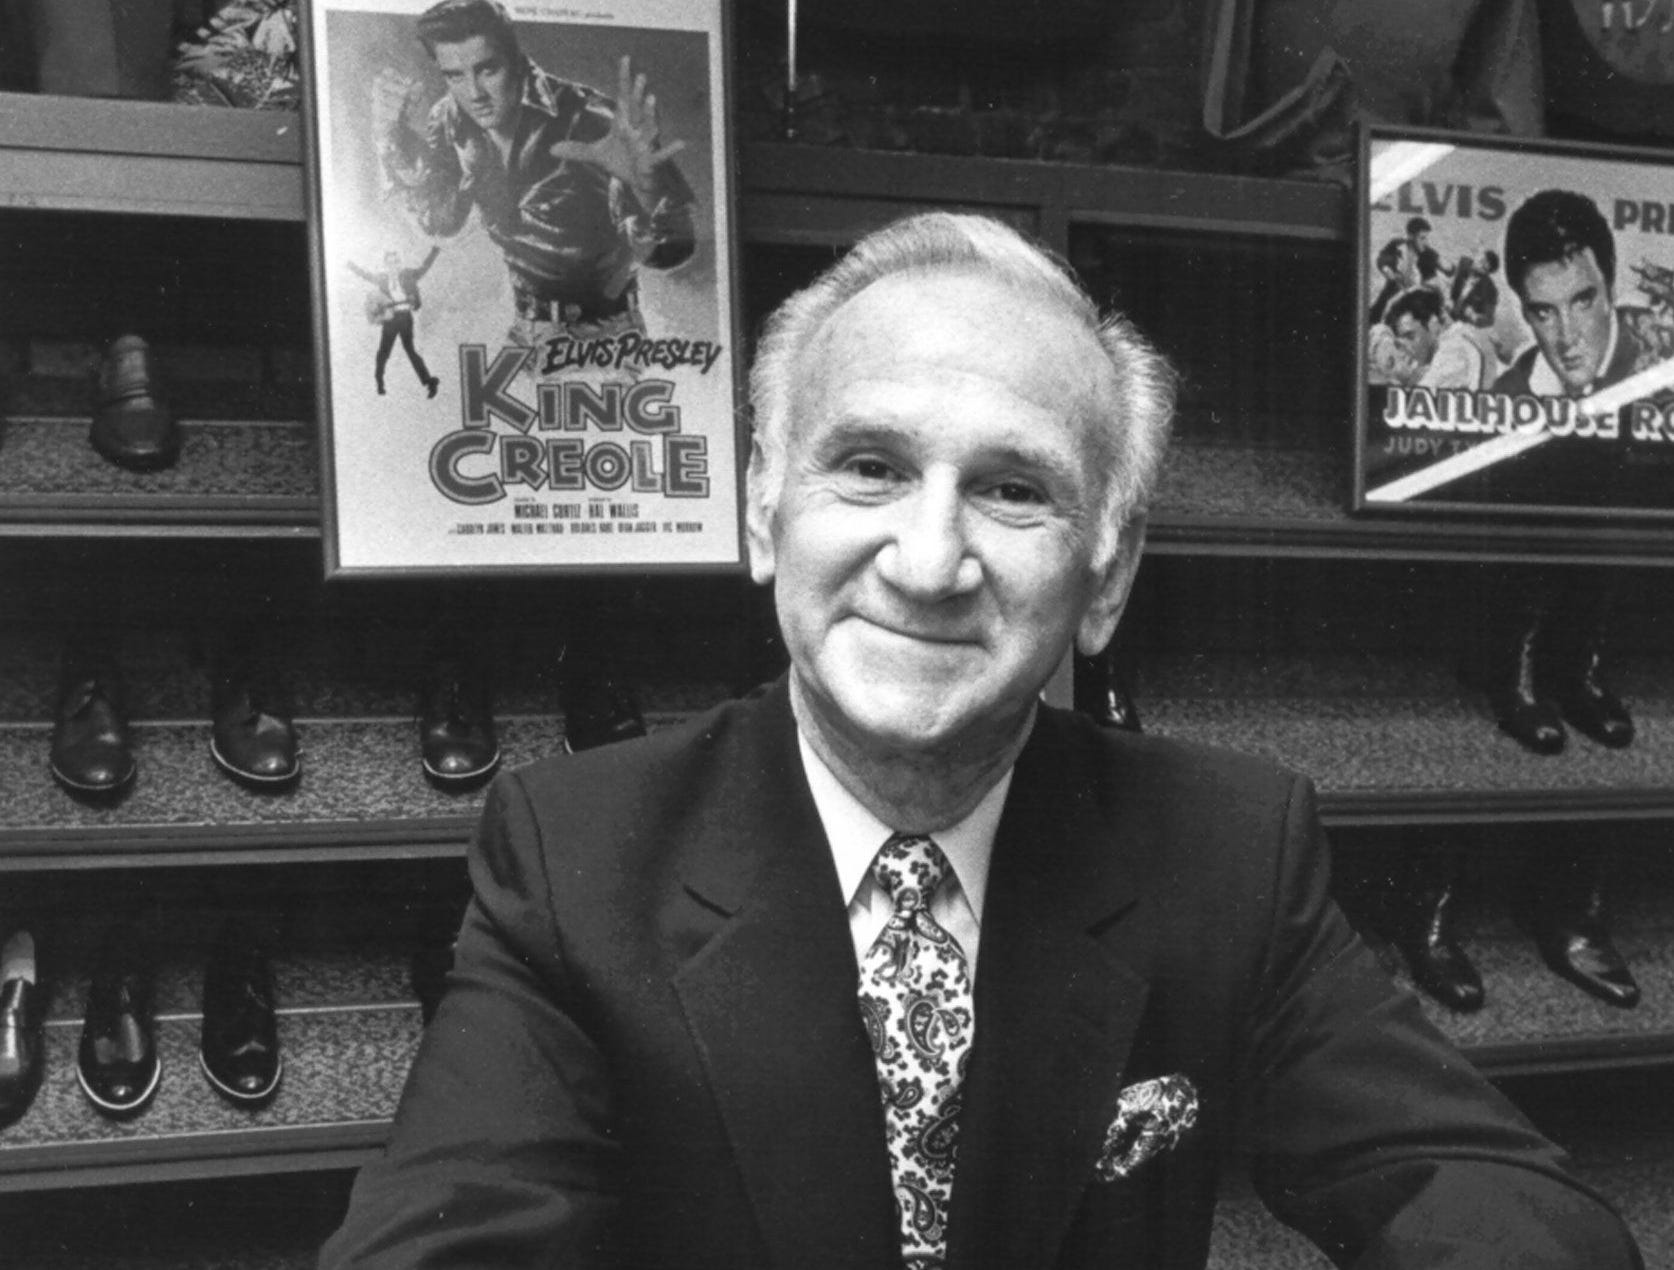 Bernard Lansky in his Beale Street clothing store on 1 Aug 1987.  Lansky sold clothes to a young Elvis Presley from this store in the 1950's.